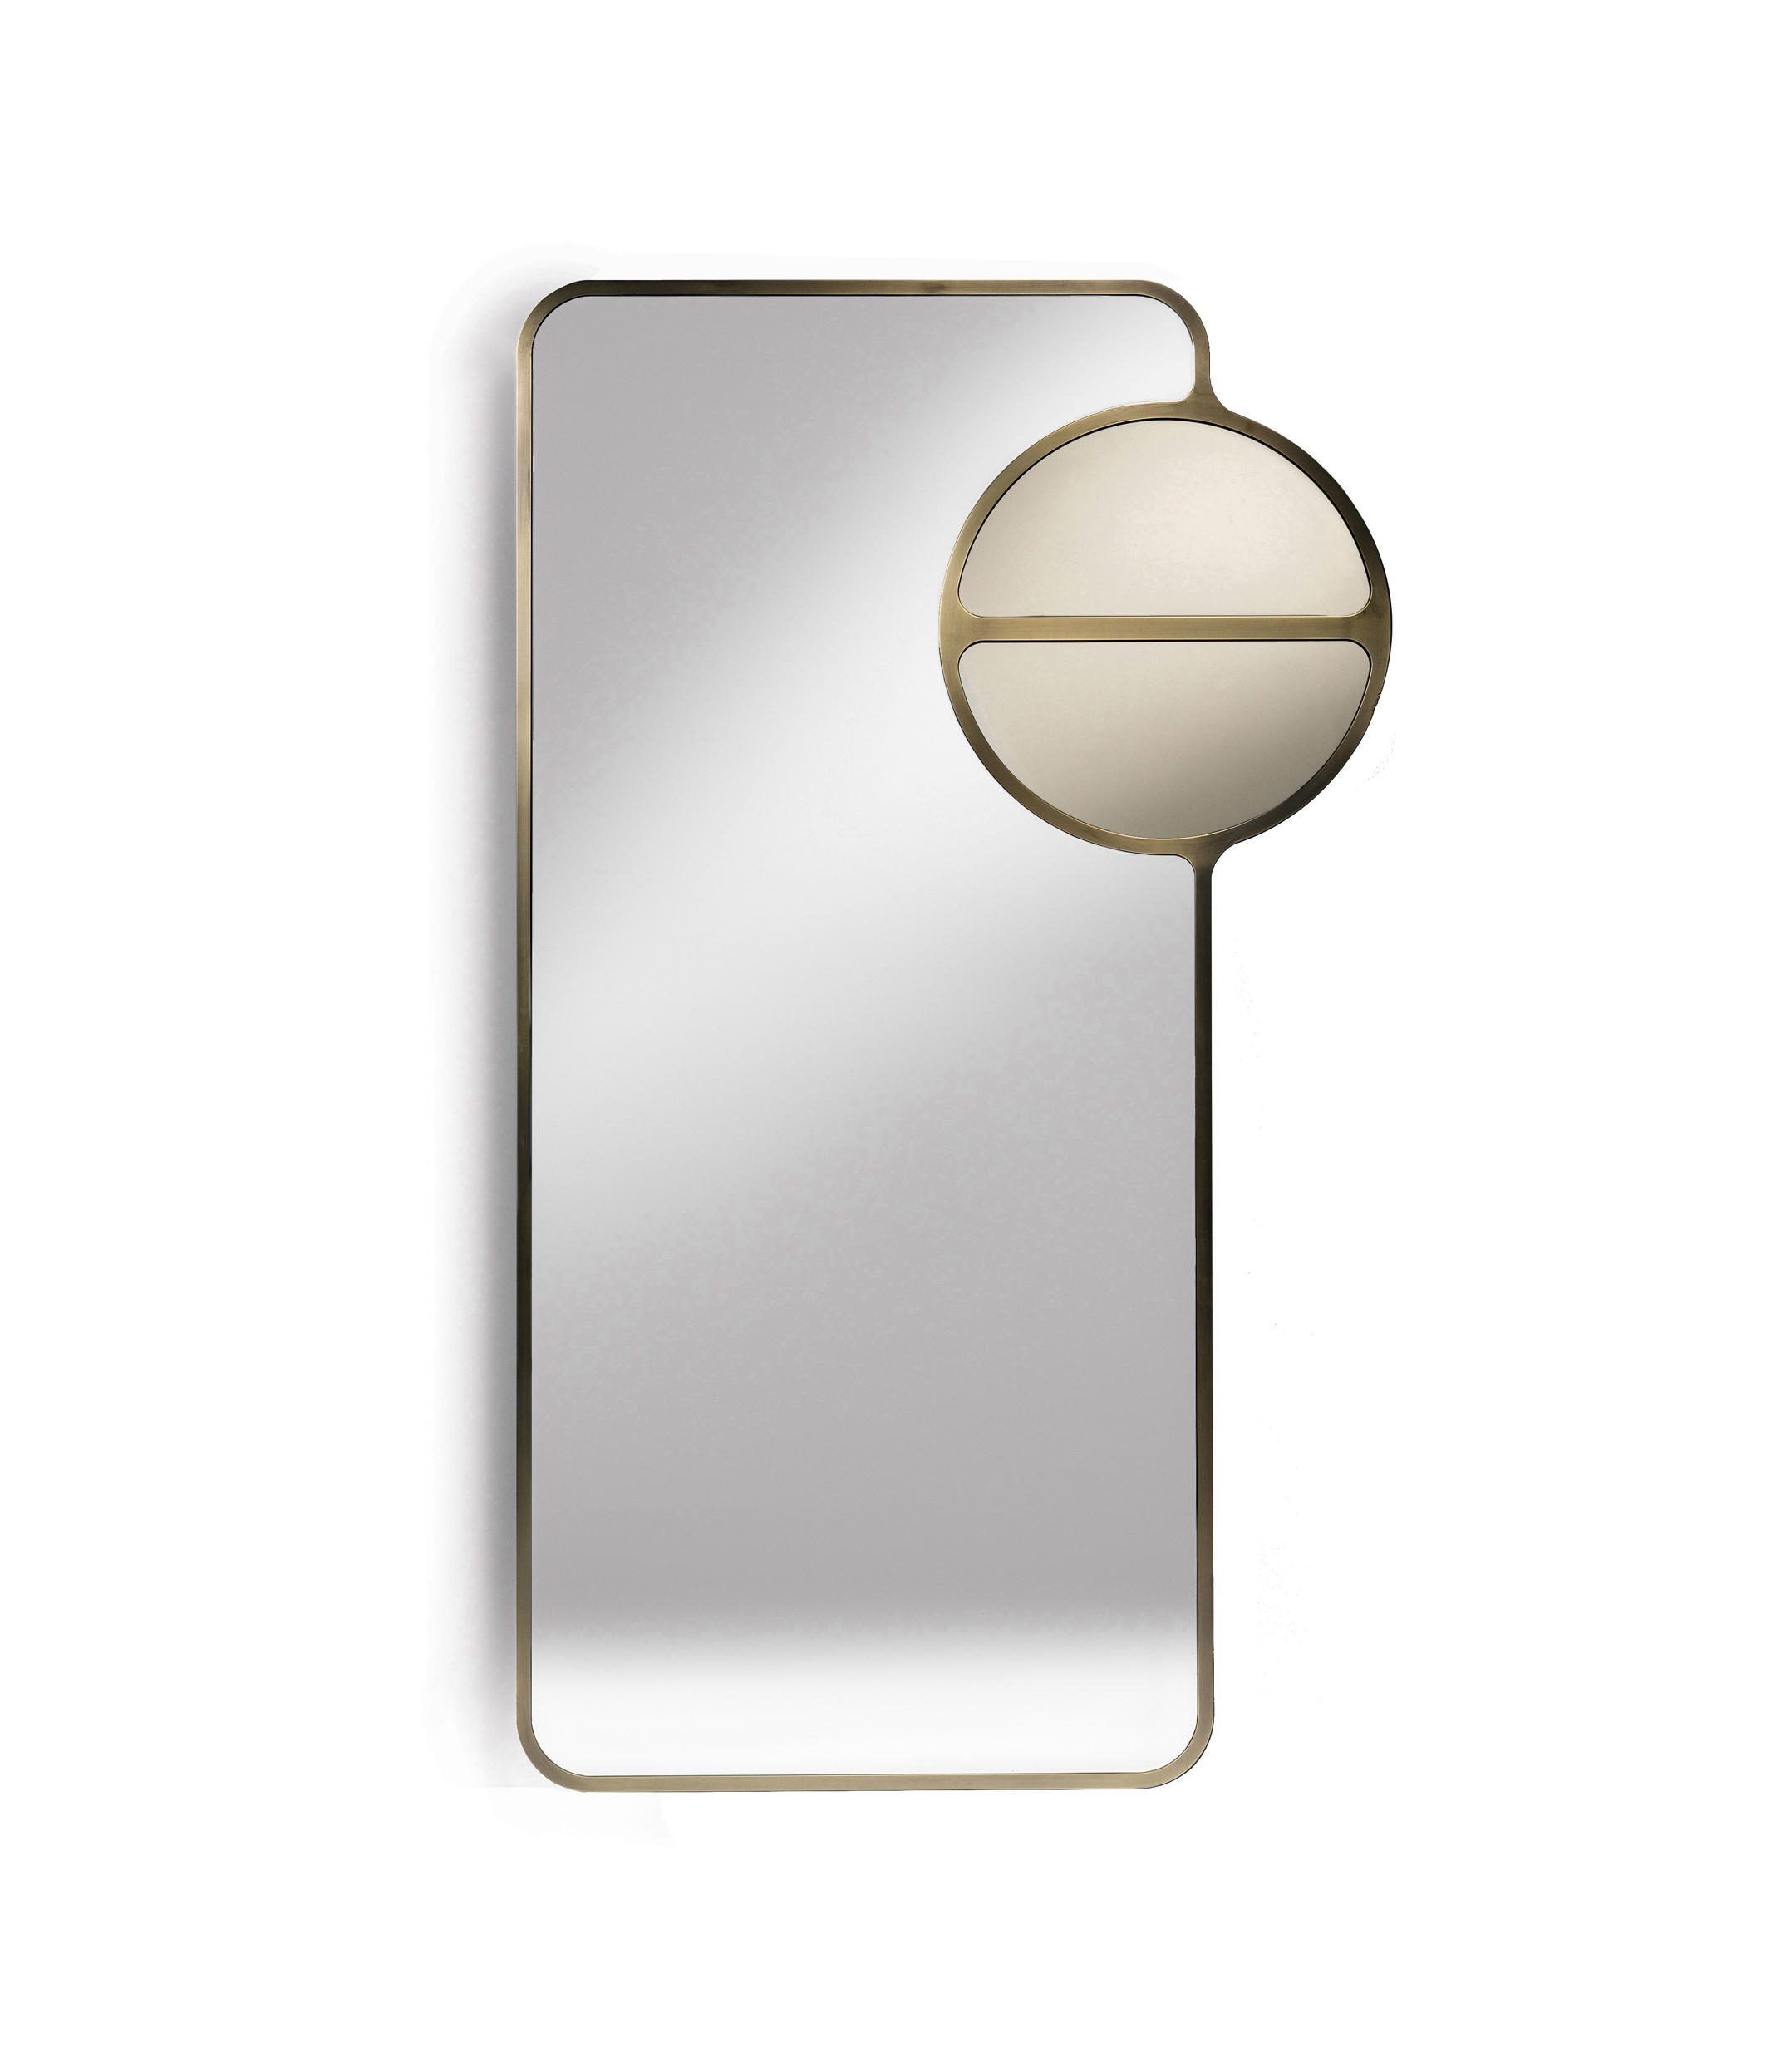 9ee1b8e6aa1d MOU - Mirrors from black tie   Architonic